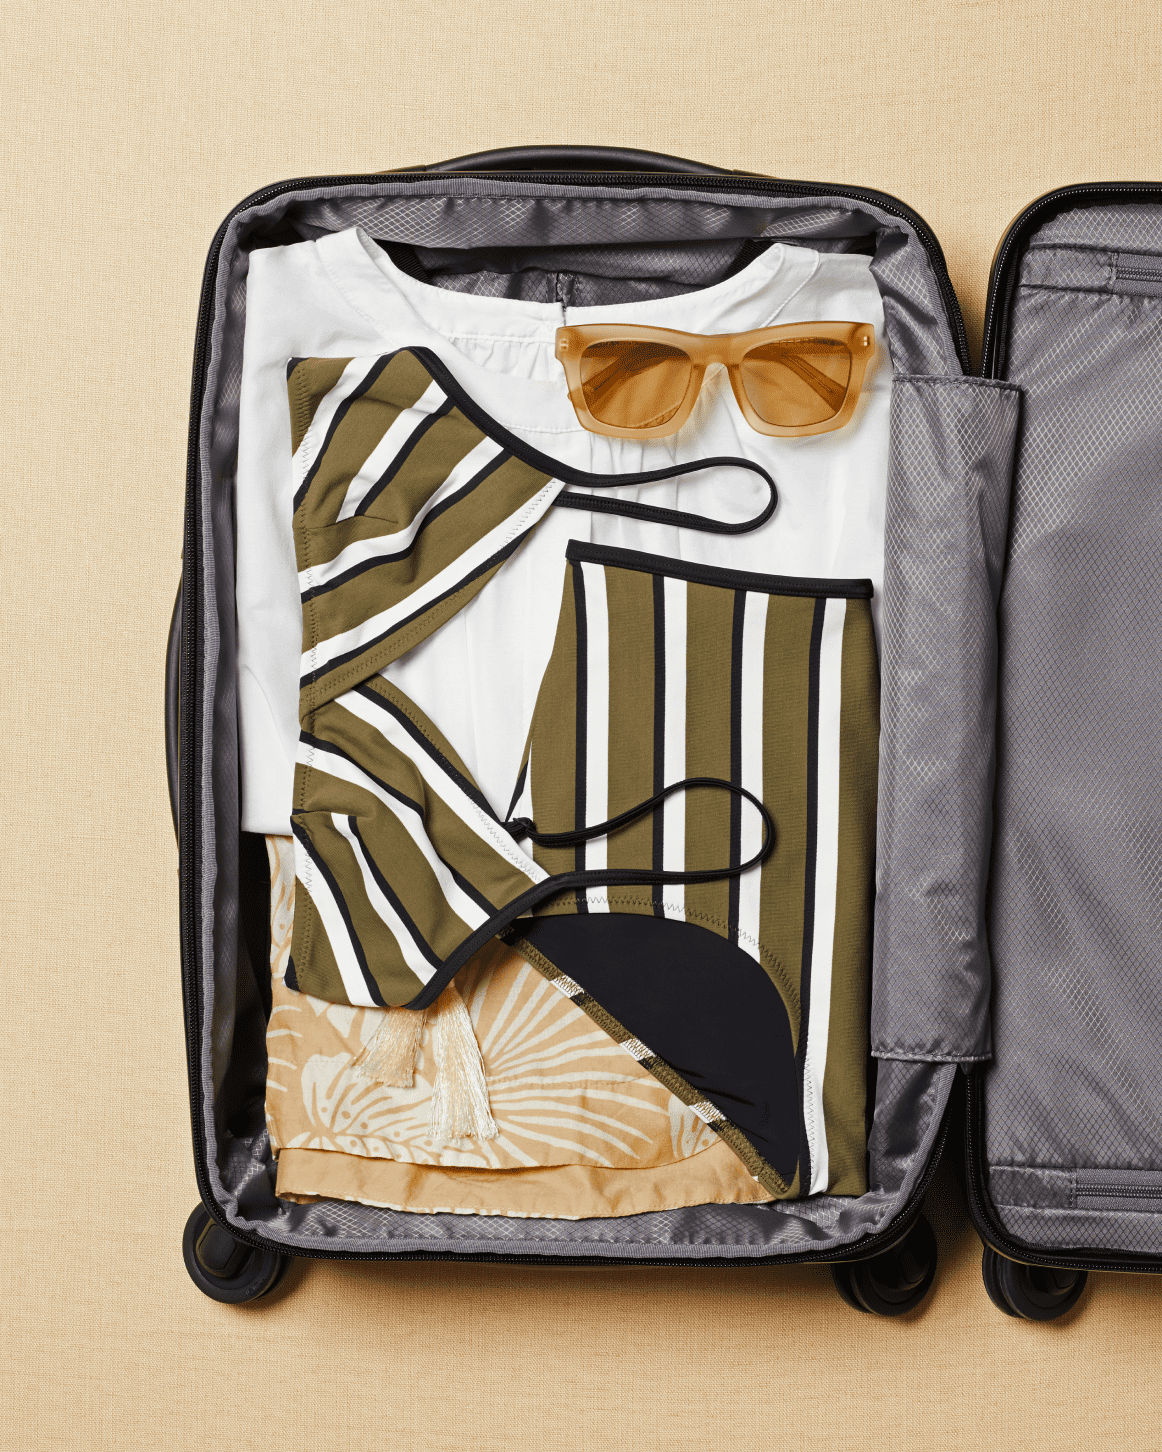 Tumi Carry-On with Swimsuit